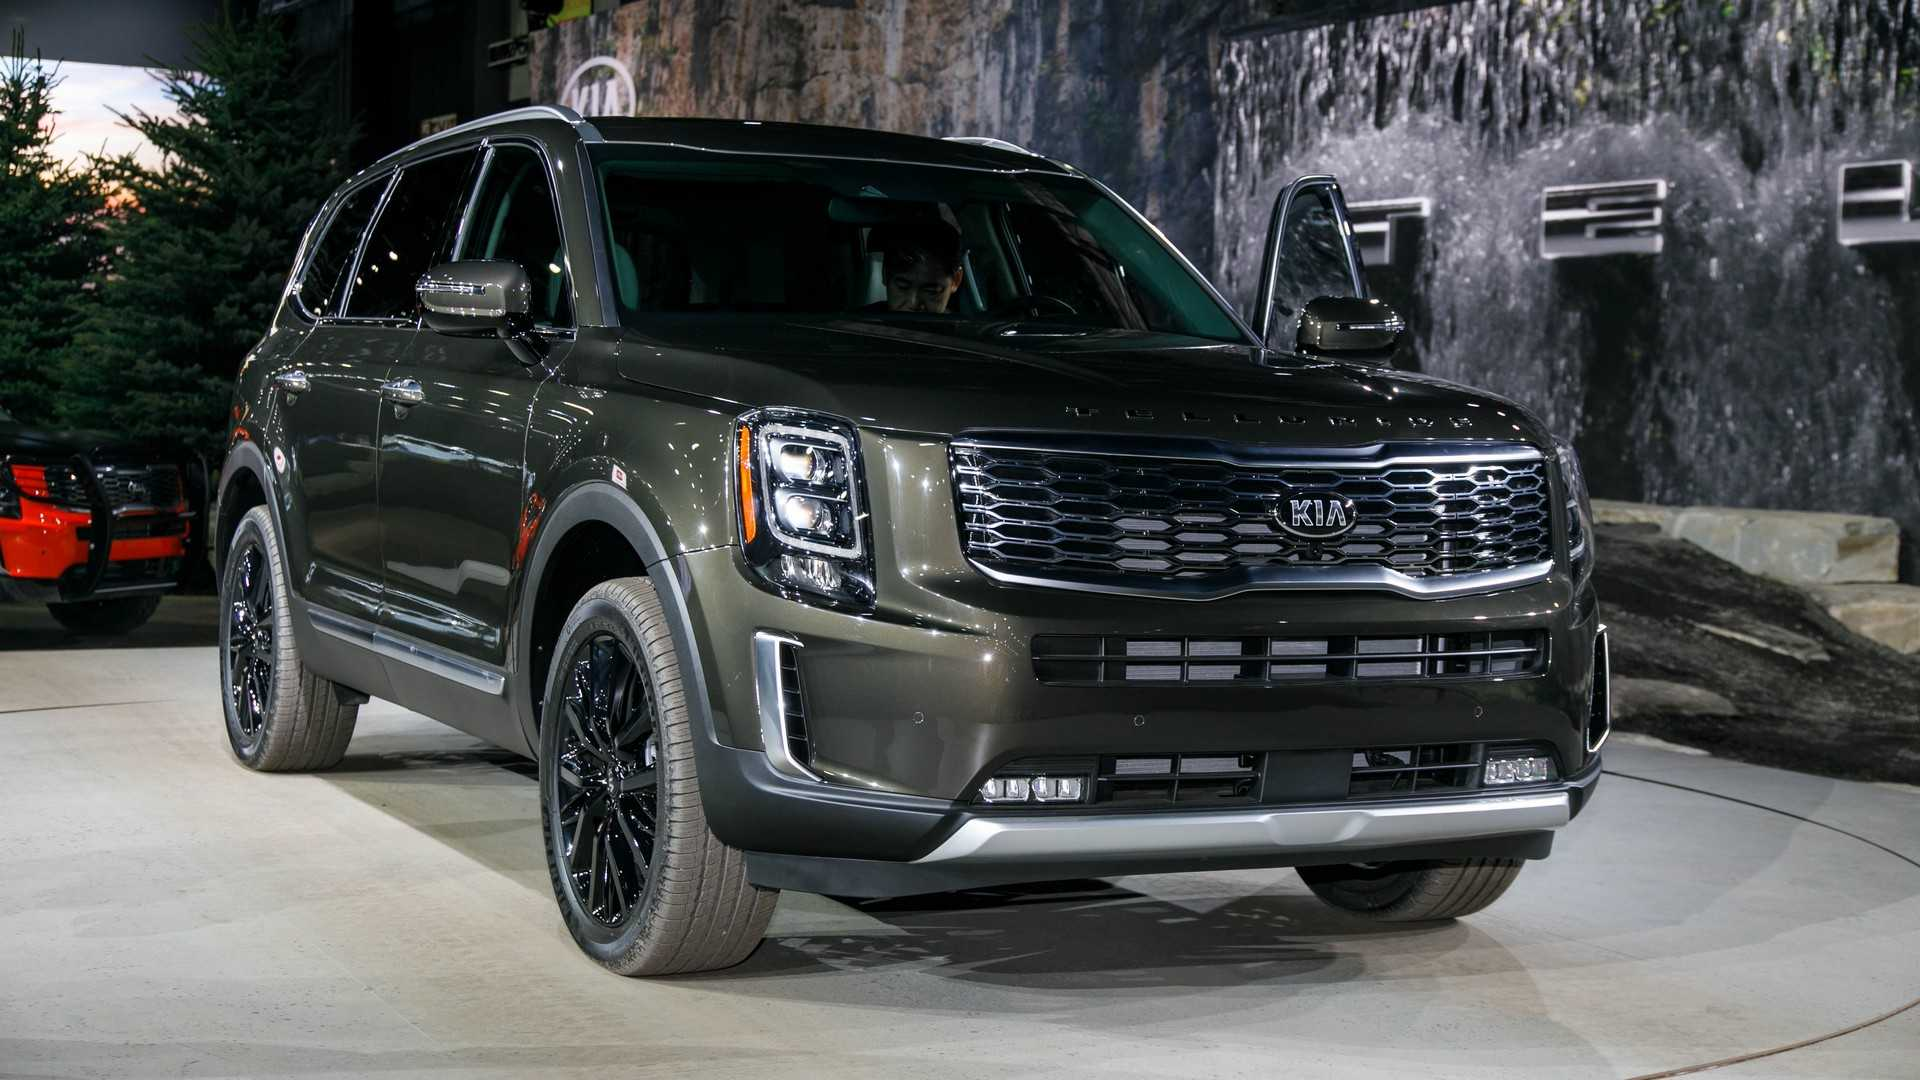 42 The 2020 Kia Telluride Images Release Date And Concept